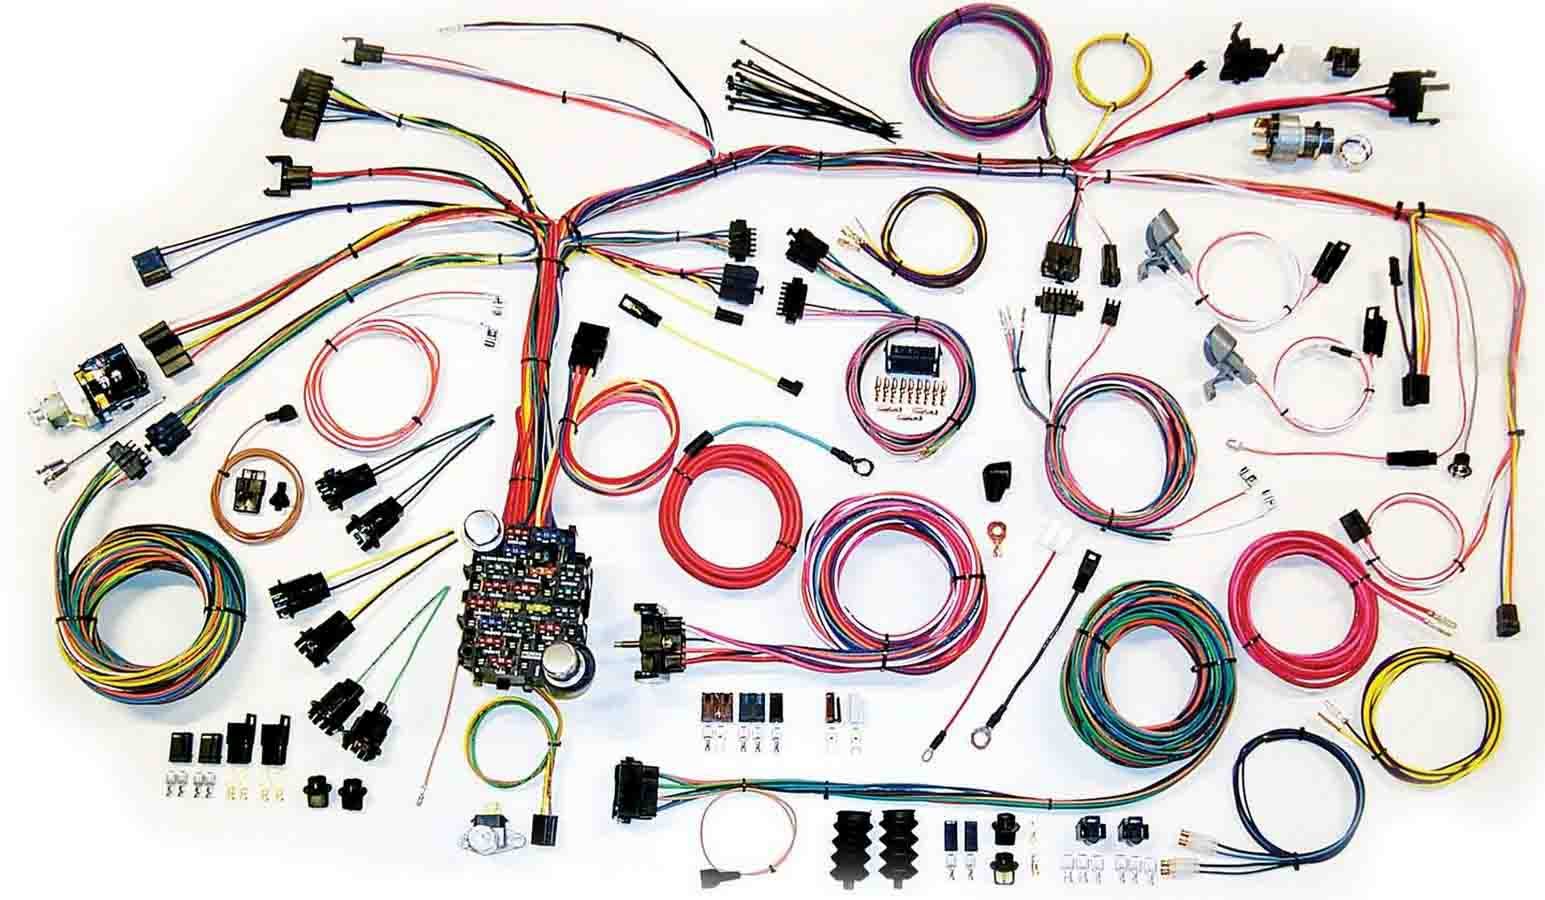 Shop for Street Rod :: Indy Auto Parts  Chevelle Wiring Harness on 1971 chevelle wiring harness, 1971 camaro wiring harness, 1964 impala wiring harness, 1964 chevelle headlight wiring, 1970 chevelle wiring harness, 1968 chevelle wiring harness, 1969 chevelle wiring harness, 1965 chevelle wiring harness, 1964 gto wiring harness, 72 chevelle engine wiring harness, 1972 chevelle wiring harness, 1966 chevelle wiring harness, 1967 chevelle wiring harness,